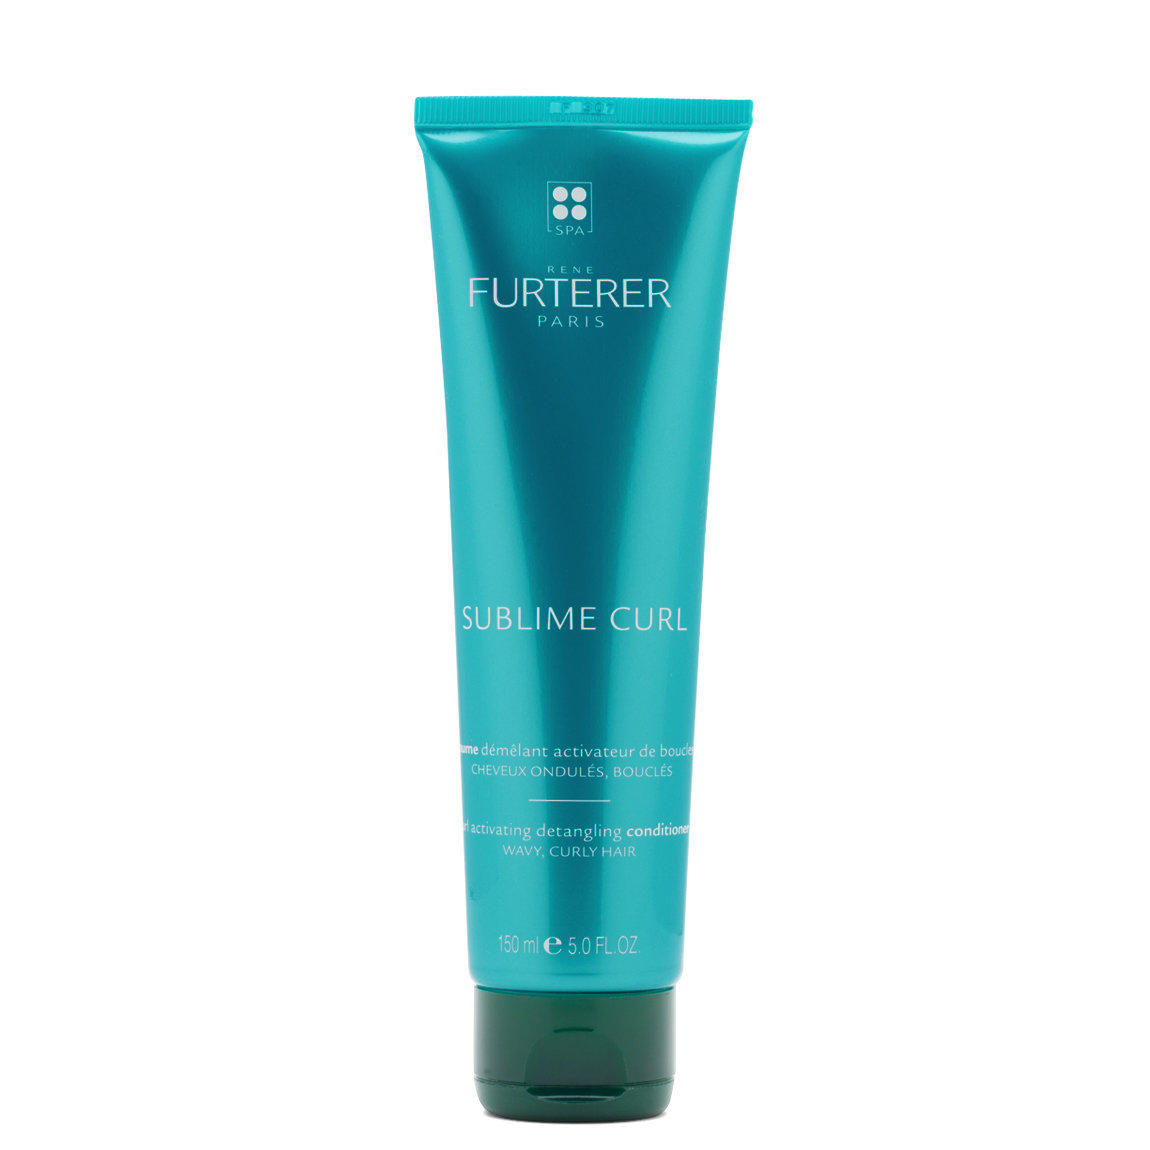 Rene Furterer Sublime Curl Curl Activating Conditioner product swatch.